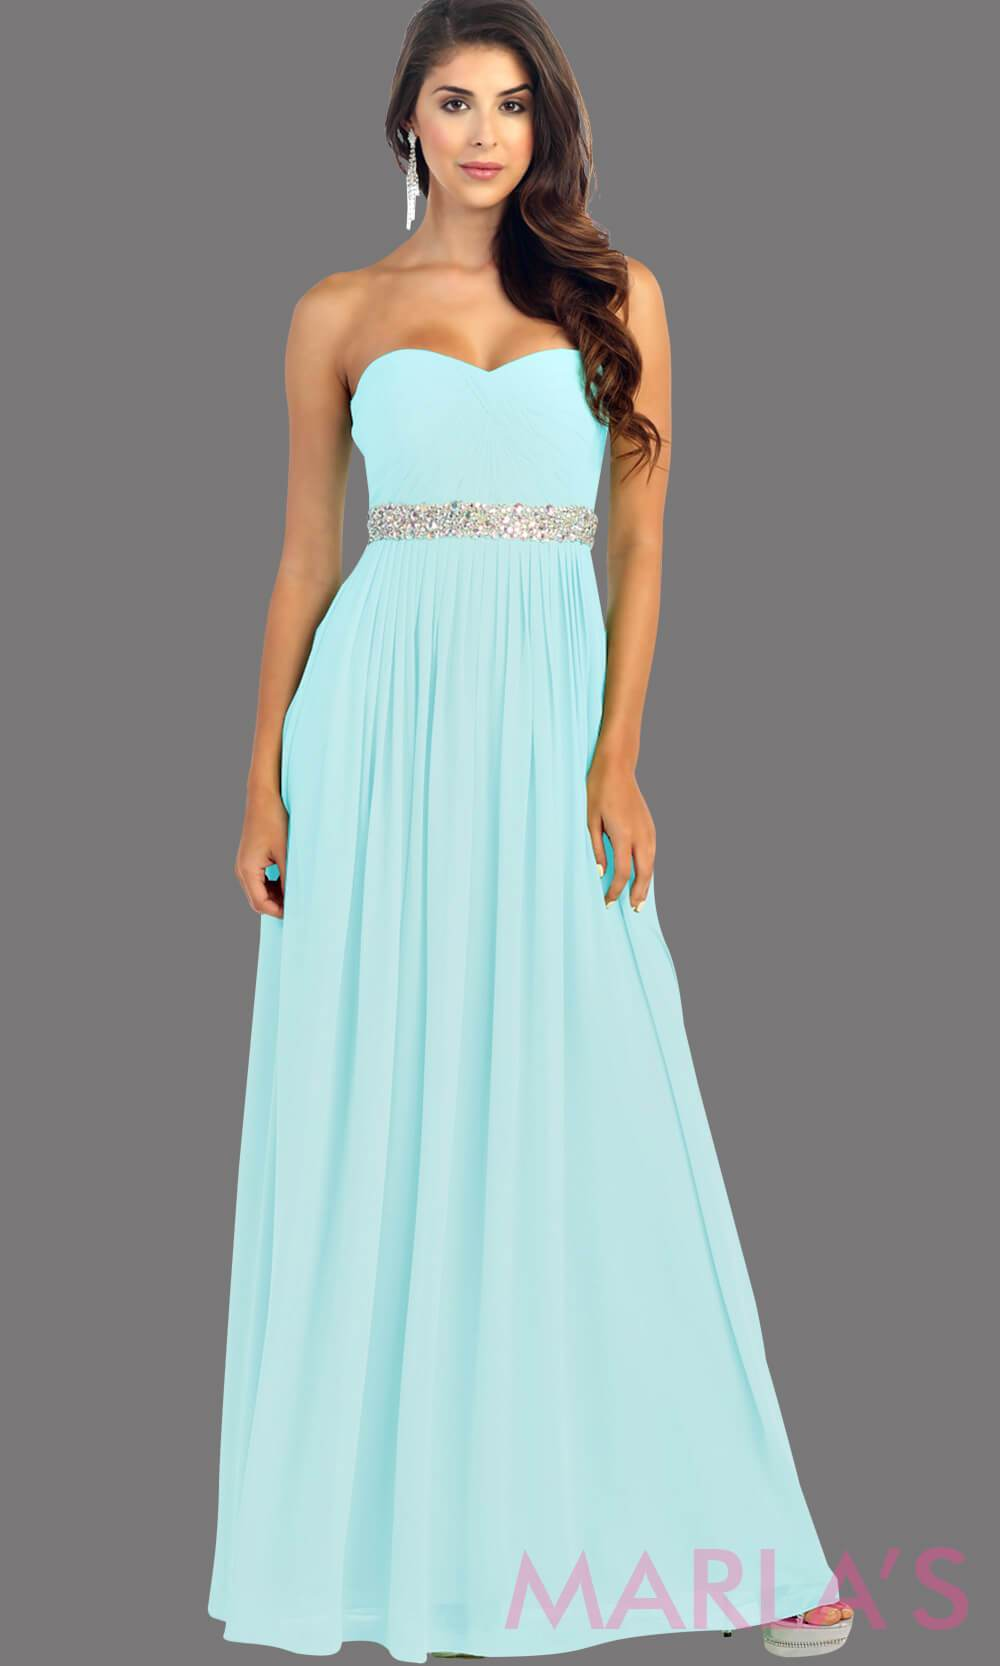 Long aqua flowy dress with corset back. It has a multicolor rhinestone belt under the bust. Perfect for bridesmaid dresses, simple prom dress, and wedding guest dress. This is available in plus sizes